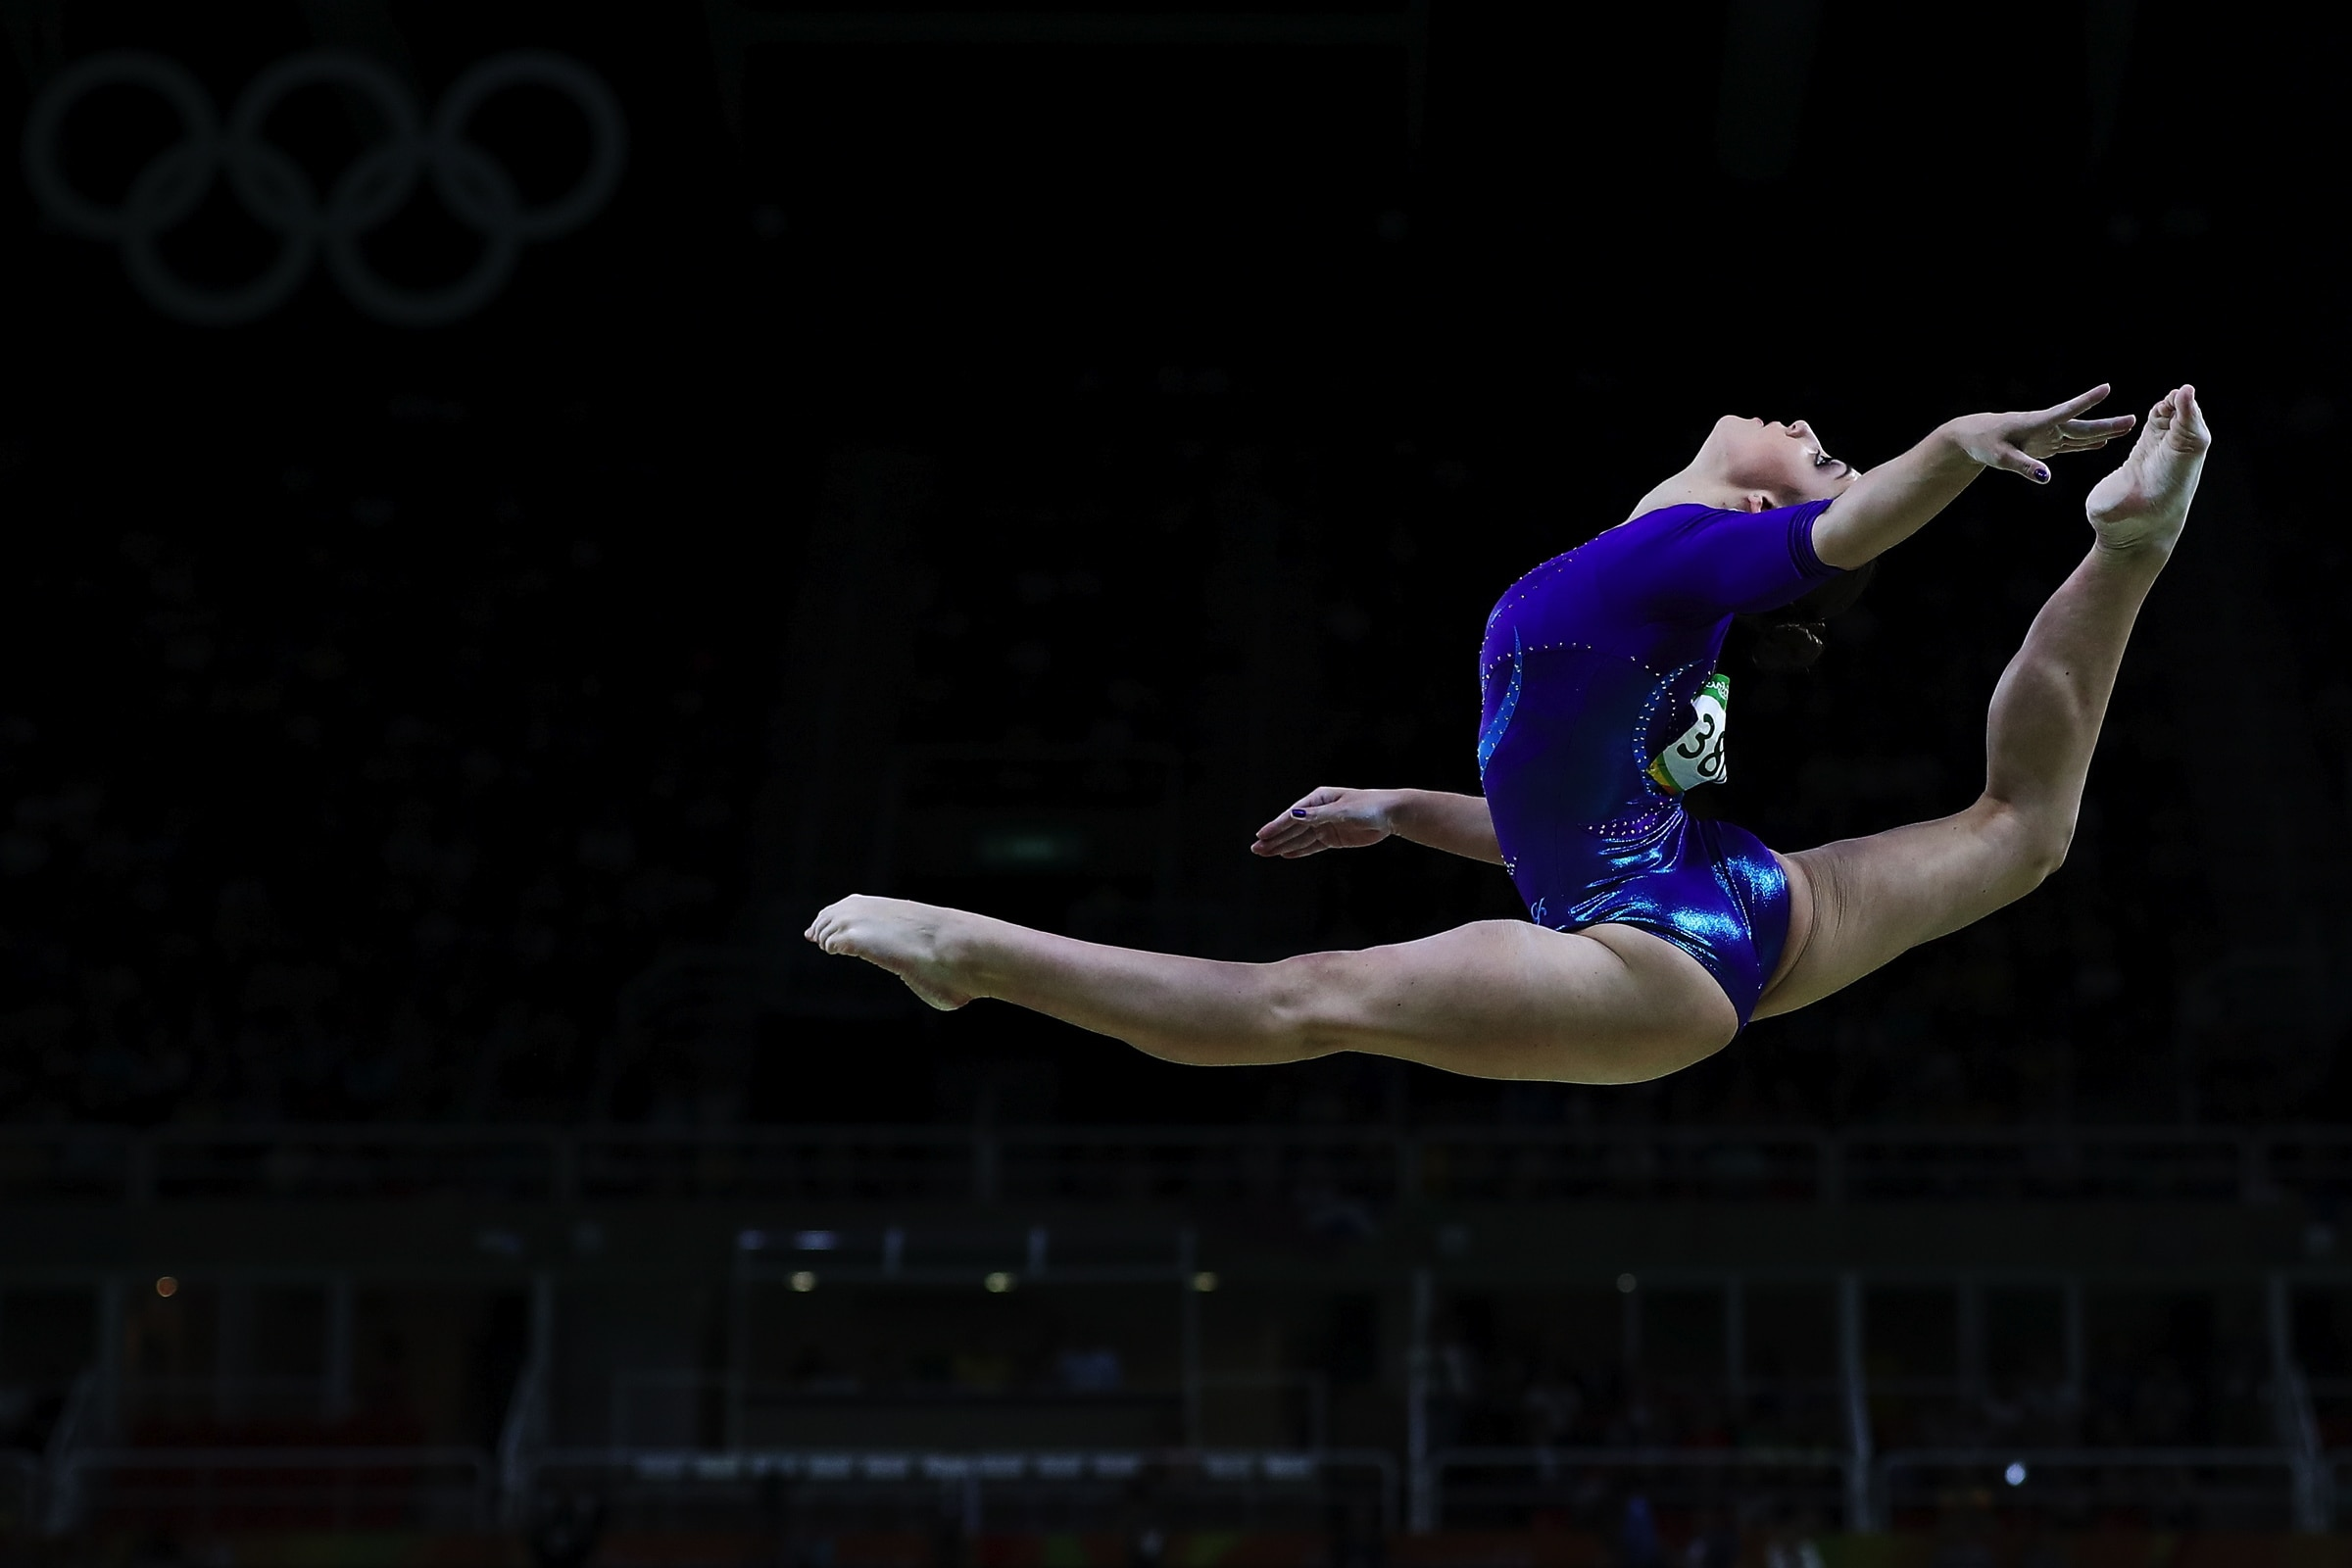 Artistic Gymnastics - Women's Individual All-Around Final